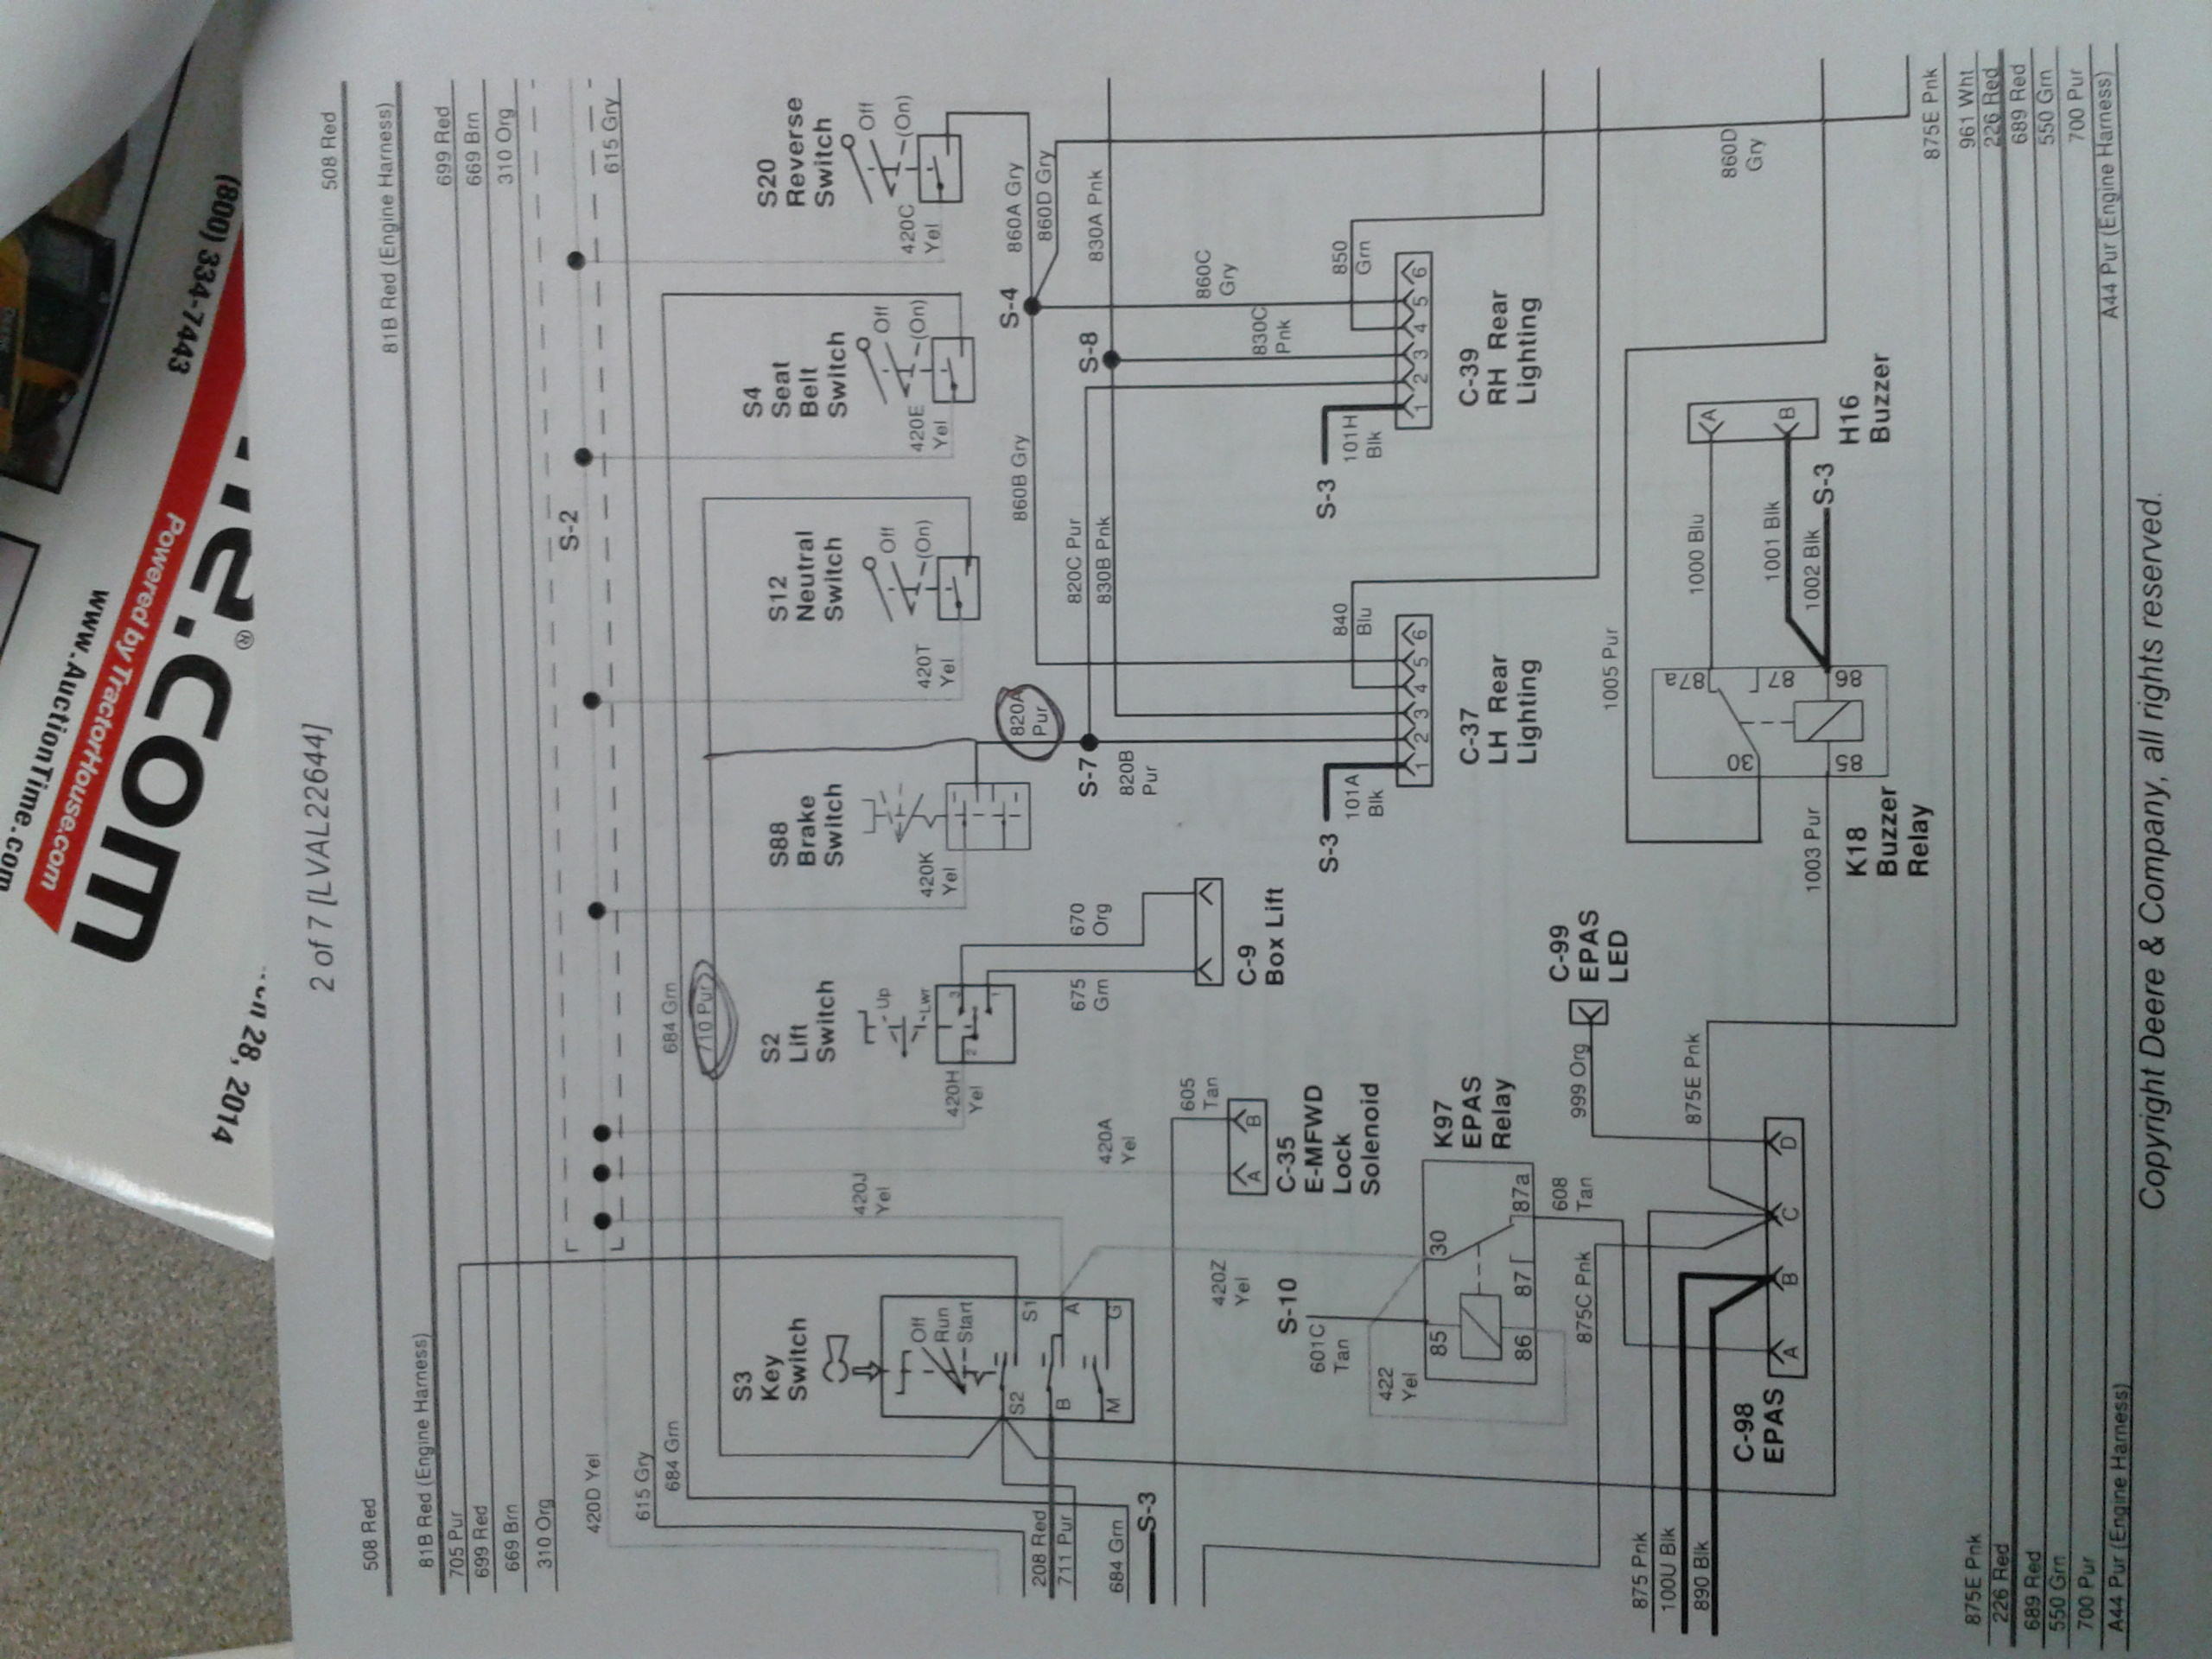 Gator Xuv 620i Wiring Diagram | Wiring Liry on